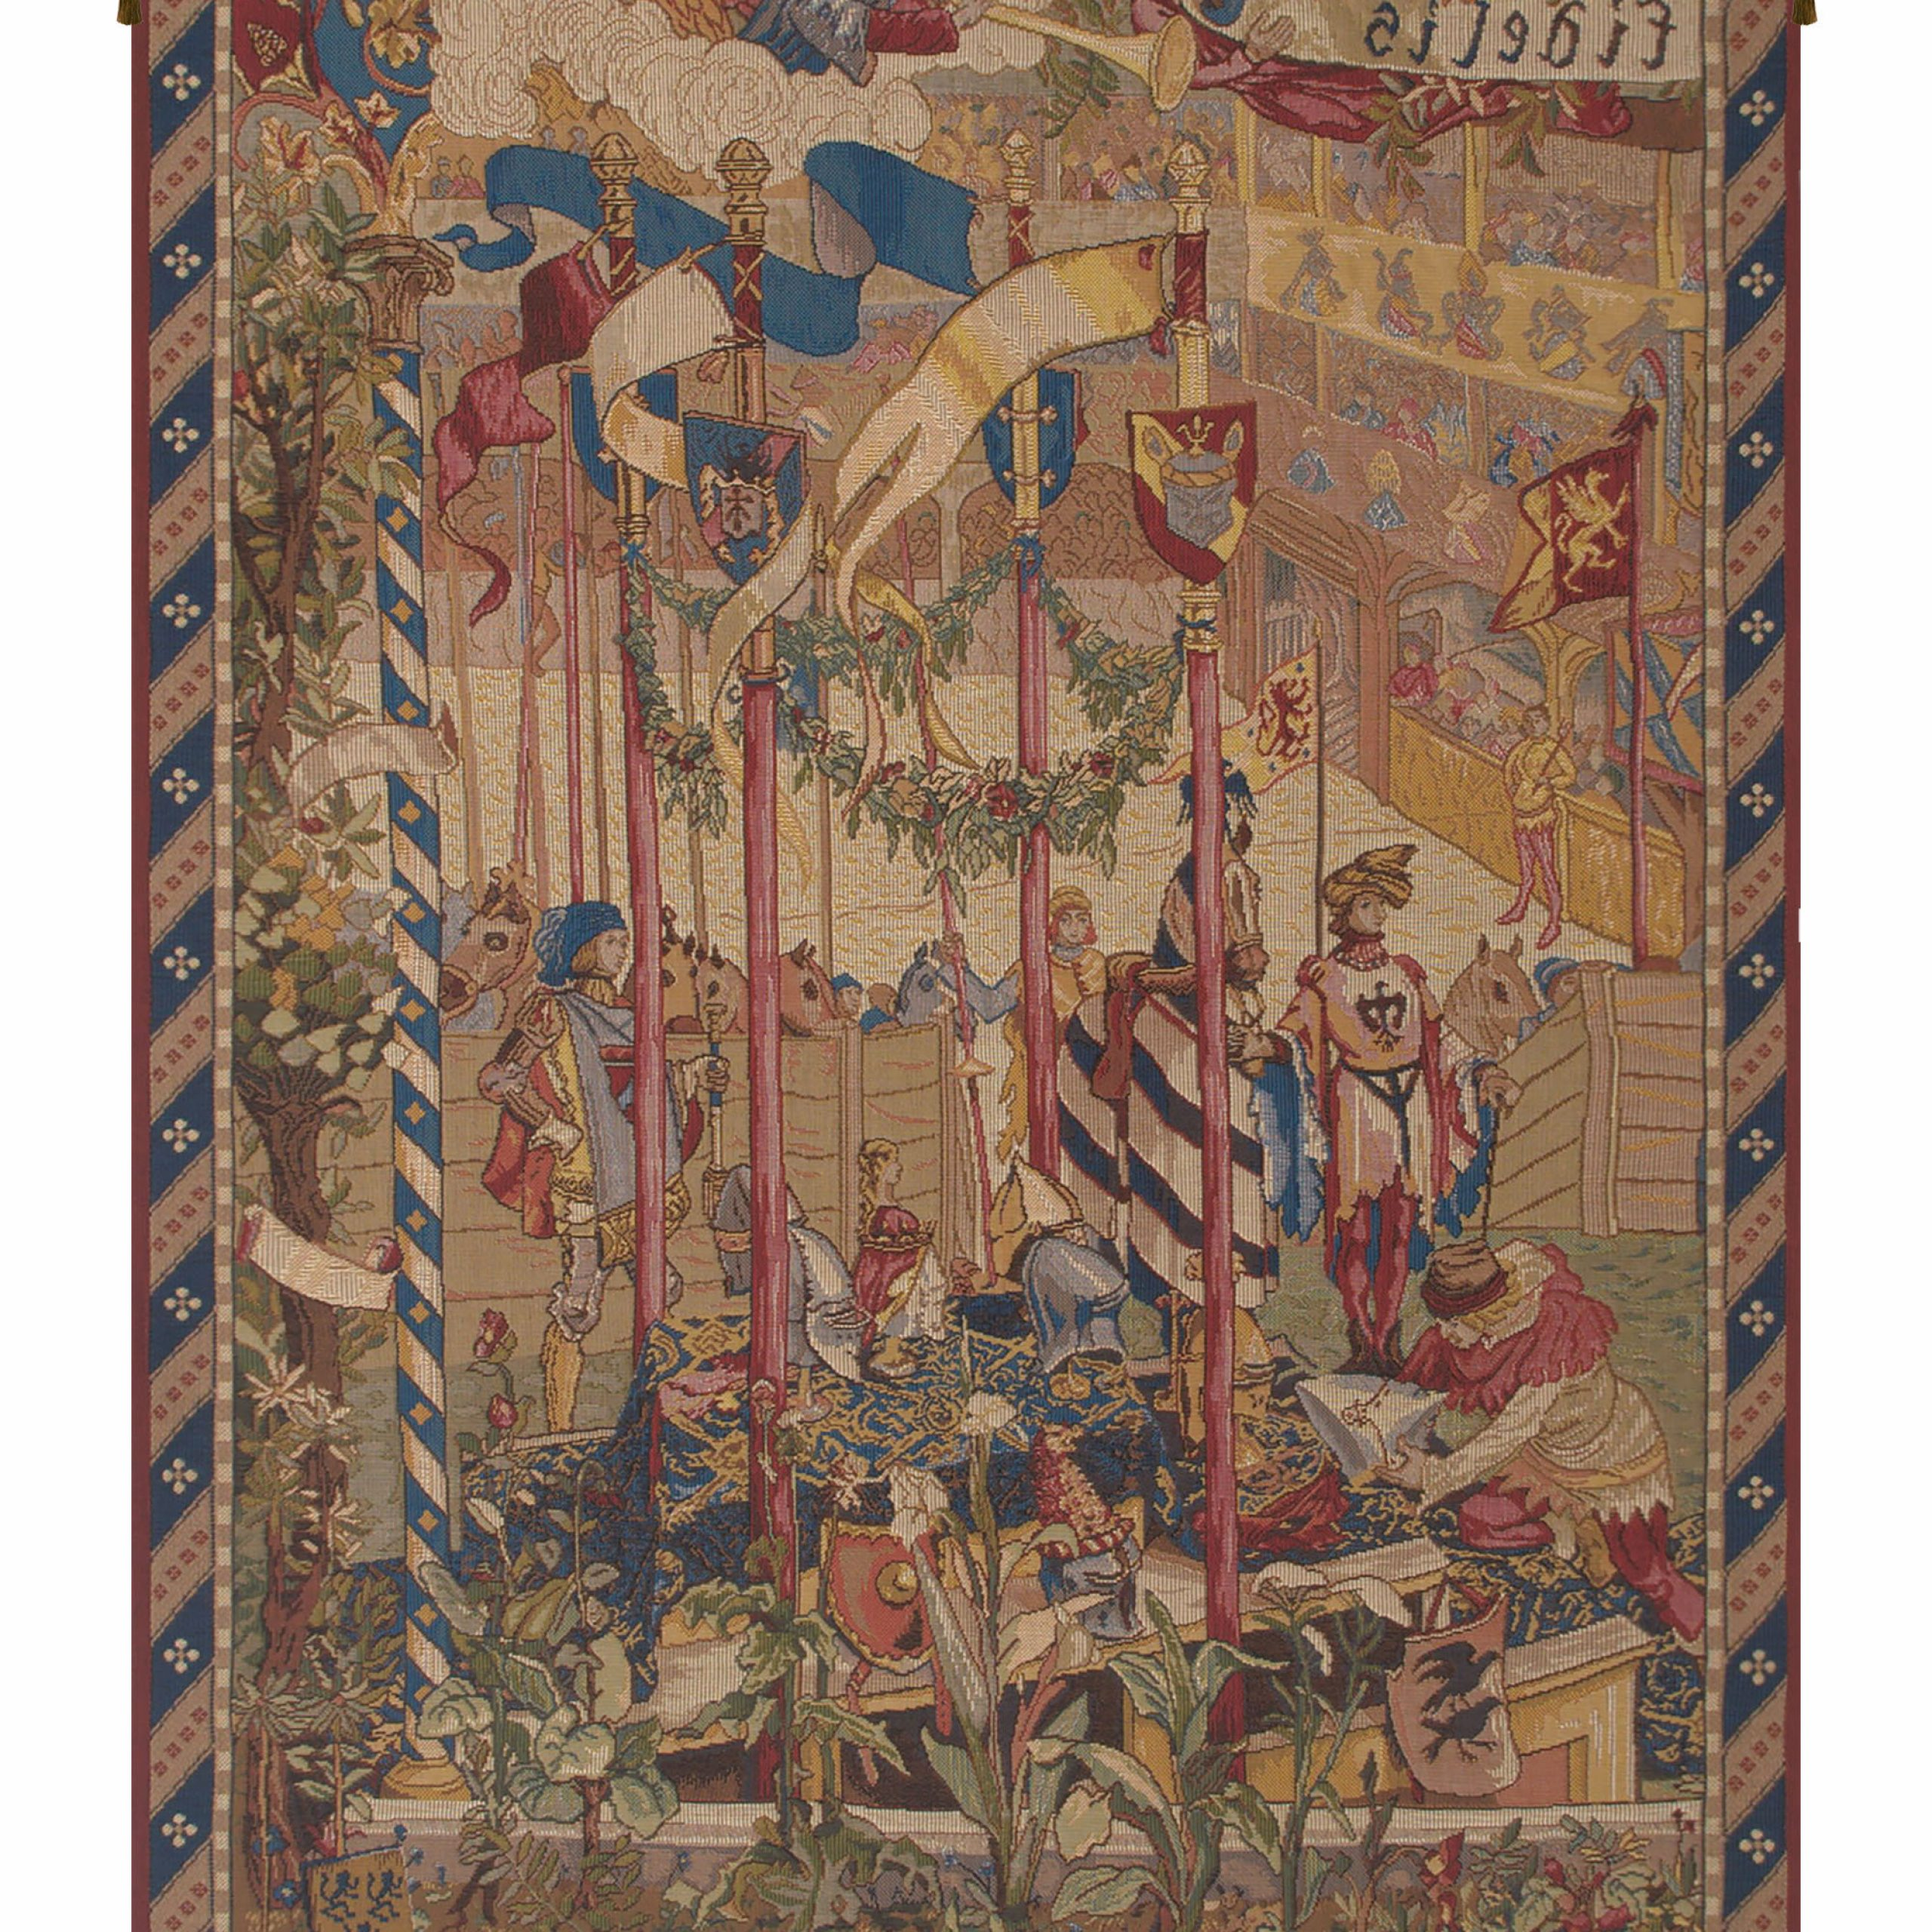 Latest La Joute French Wall Tapestry Hanging For Blended Fabric Ethereal Days Chinoiserie Wall Hangings With Rod (View 3 of 20)